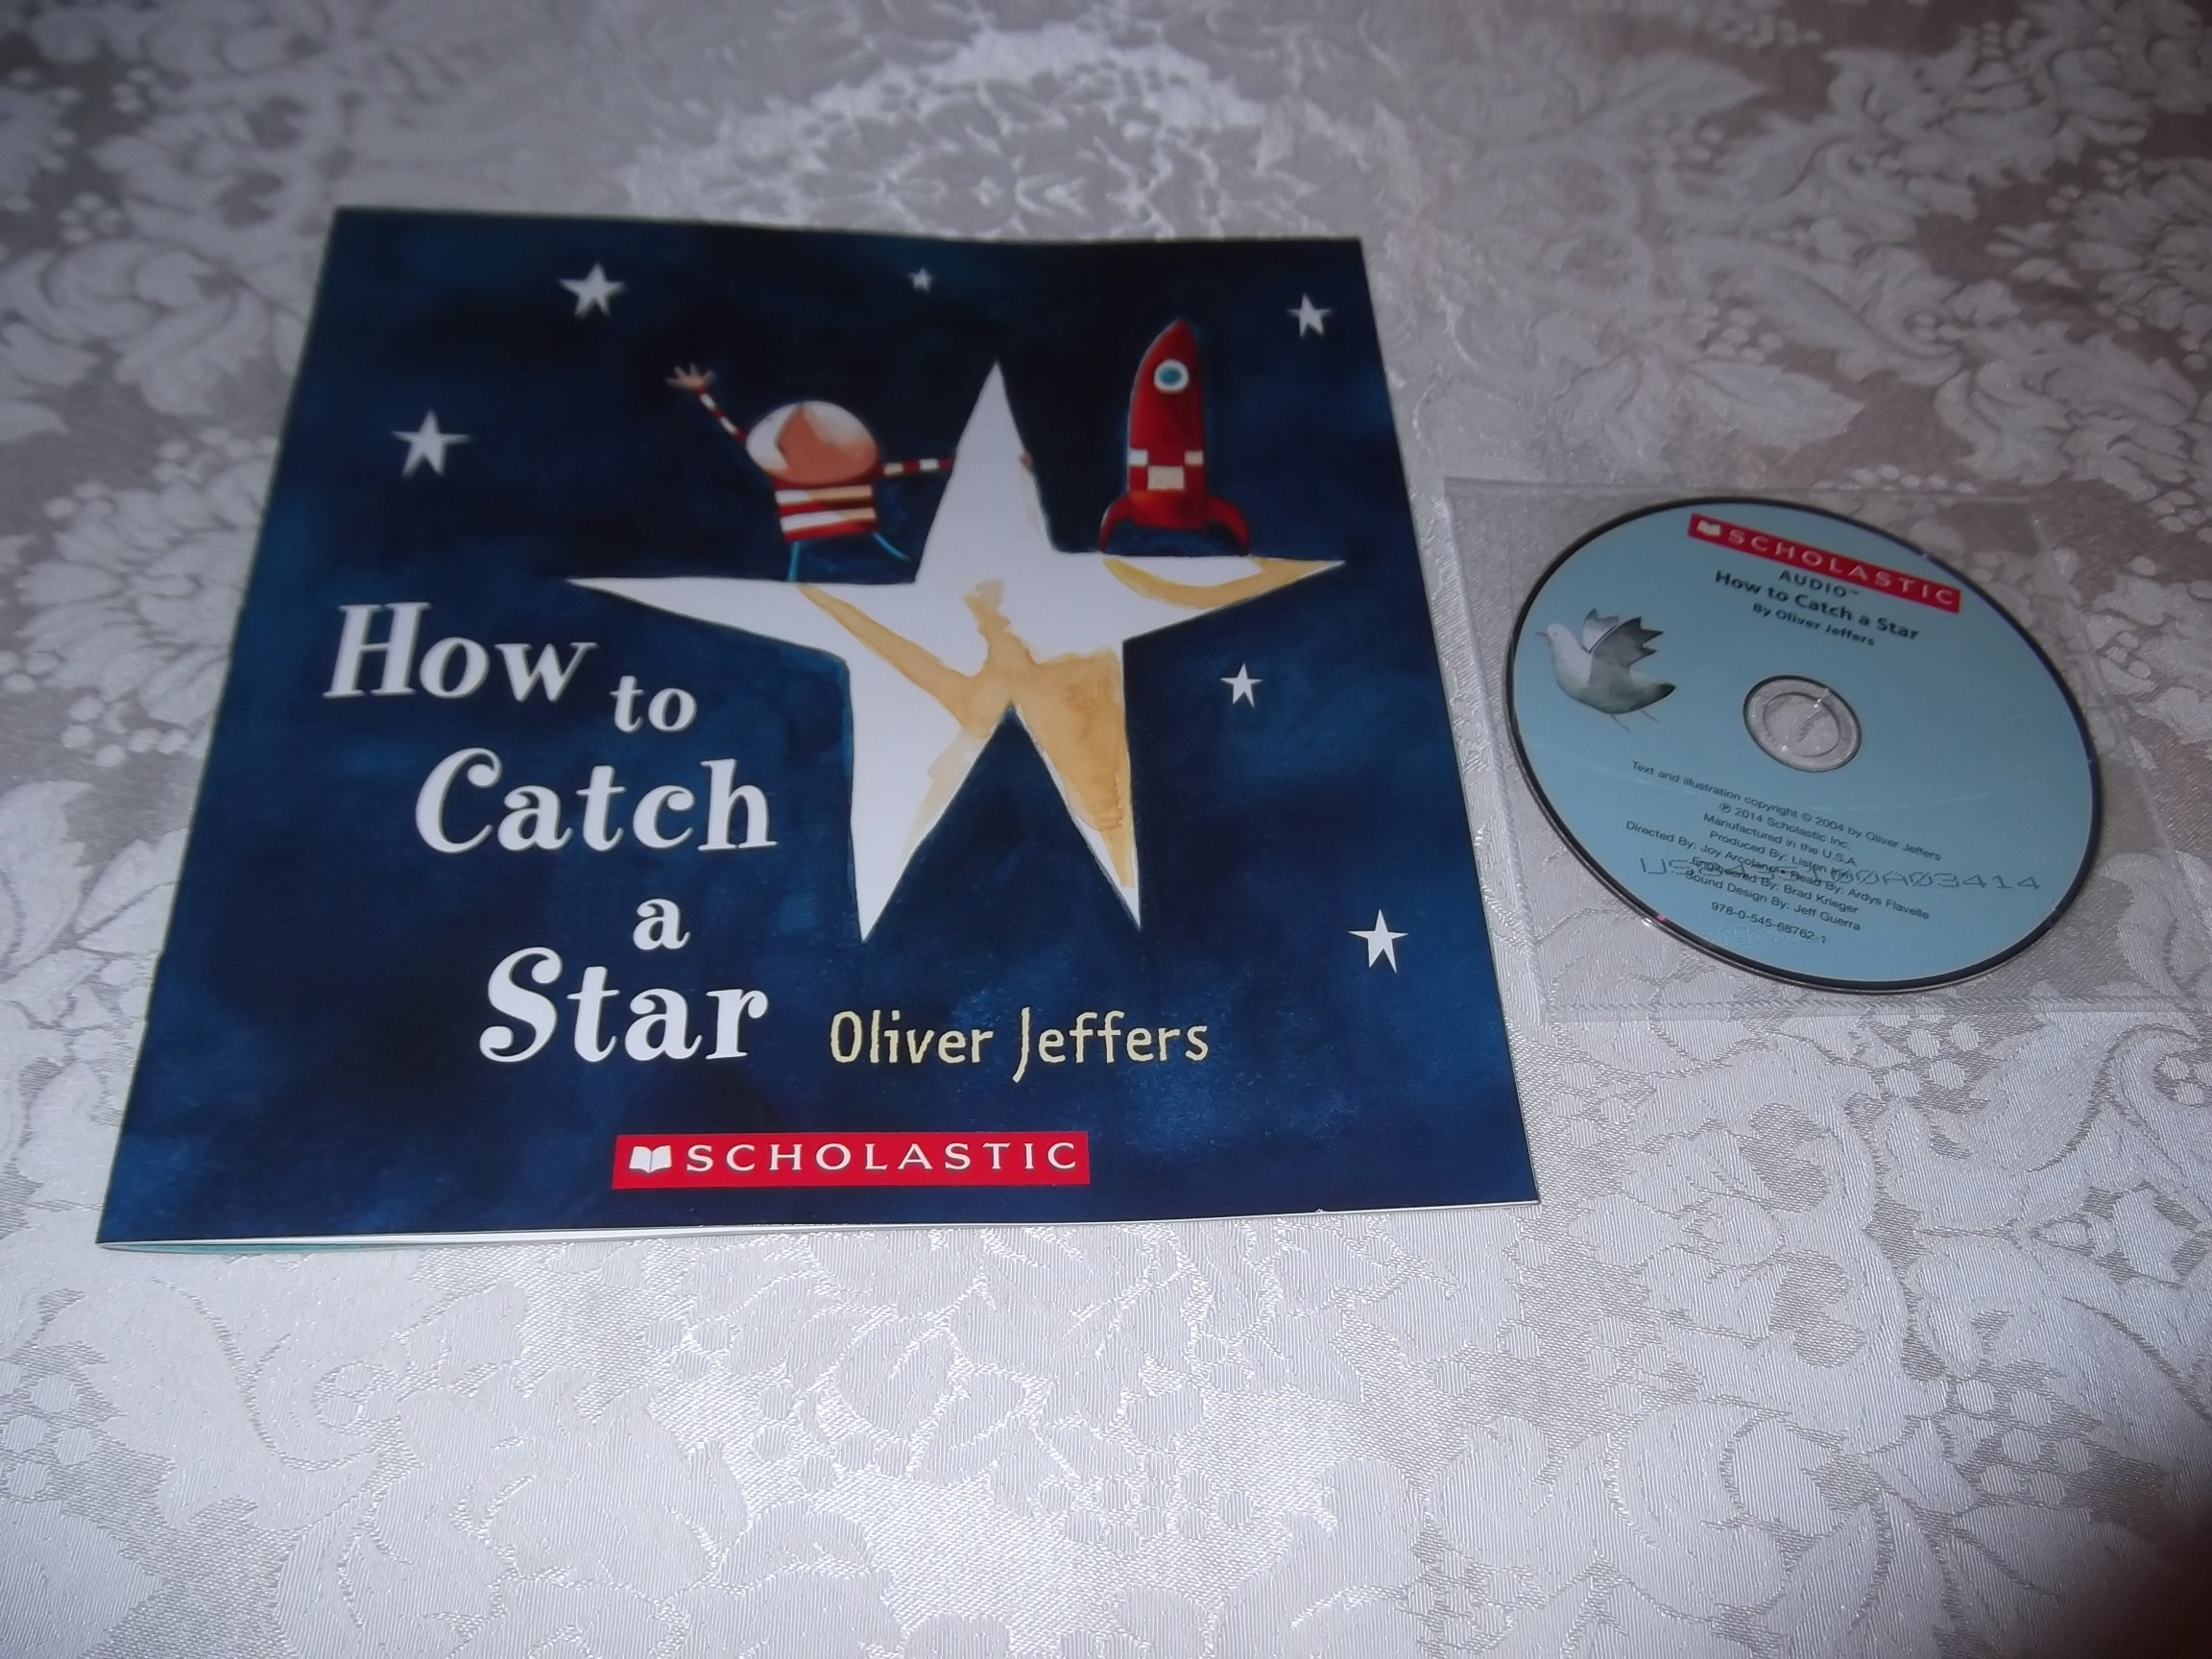 How to Catch A Star brand new Audio CD and sc Oliver Jeffers